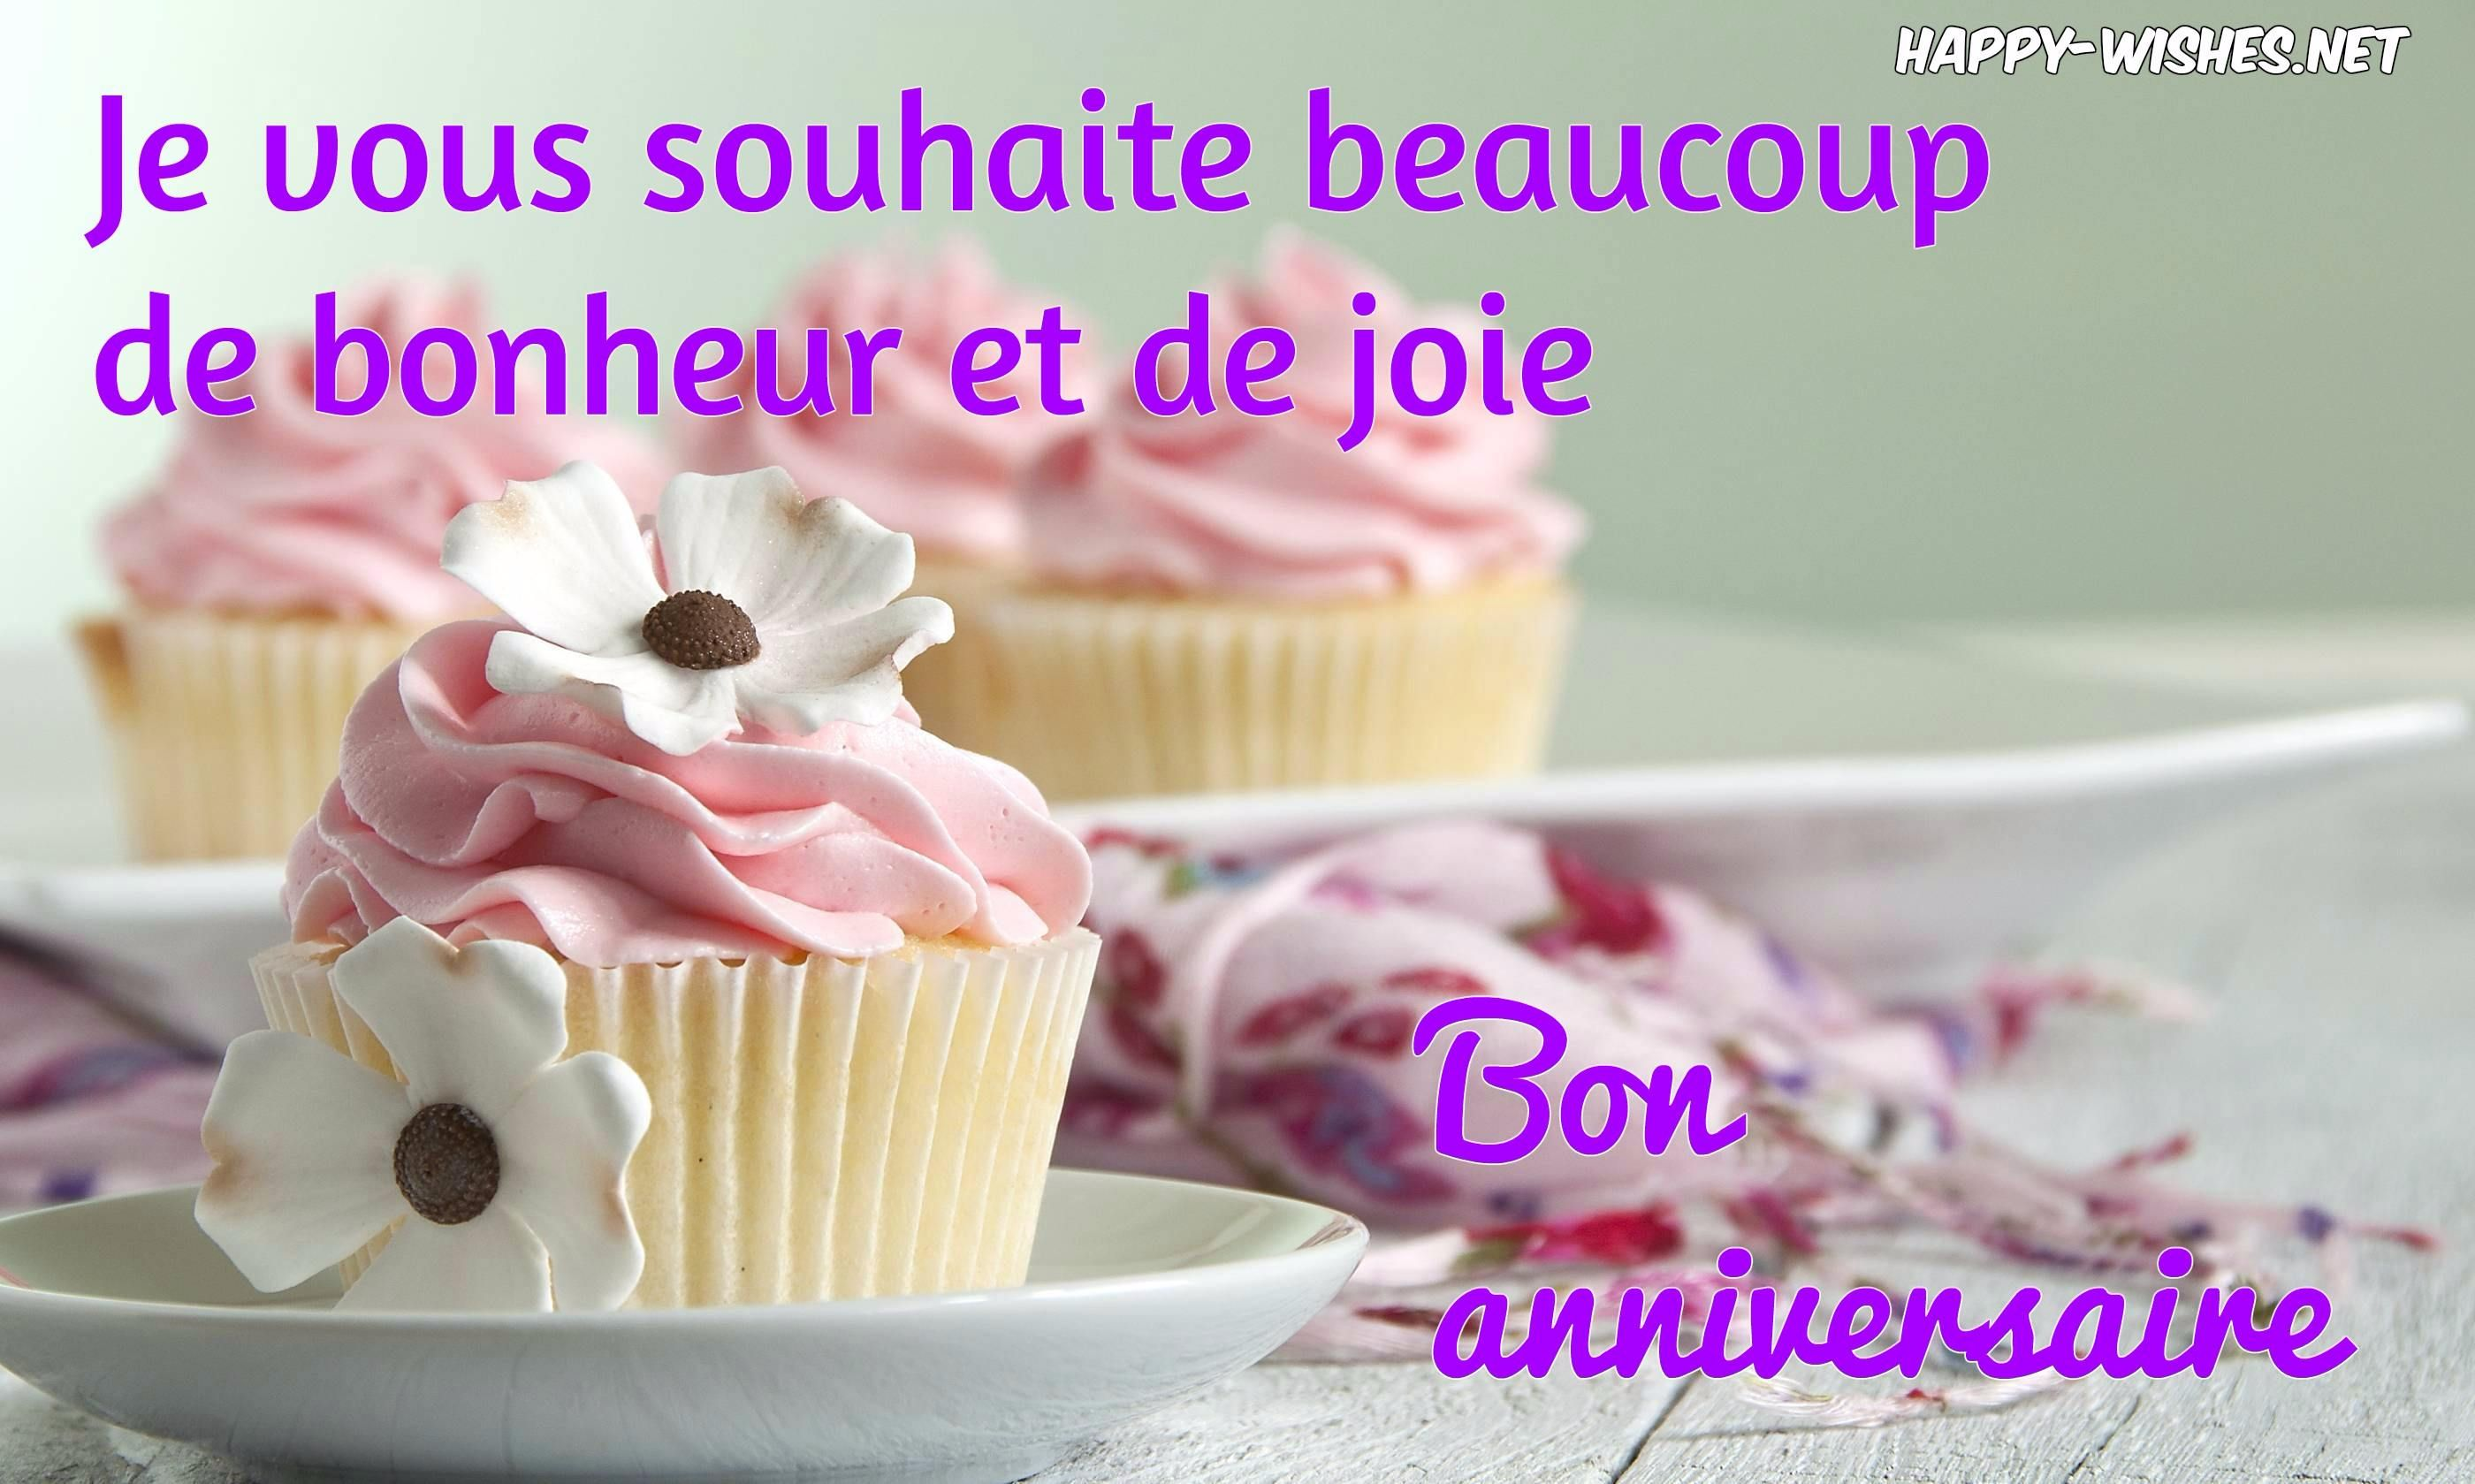 Remarkable Happy Birthday Bon Anniversaire Wishes In French With Images Personalised Birthday Cards Paralily Jamesorg